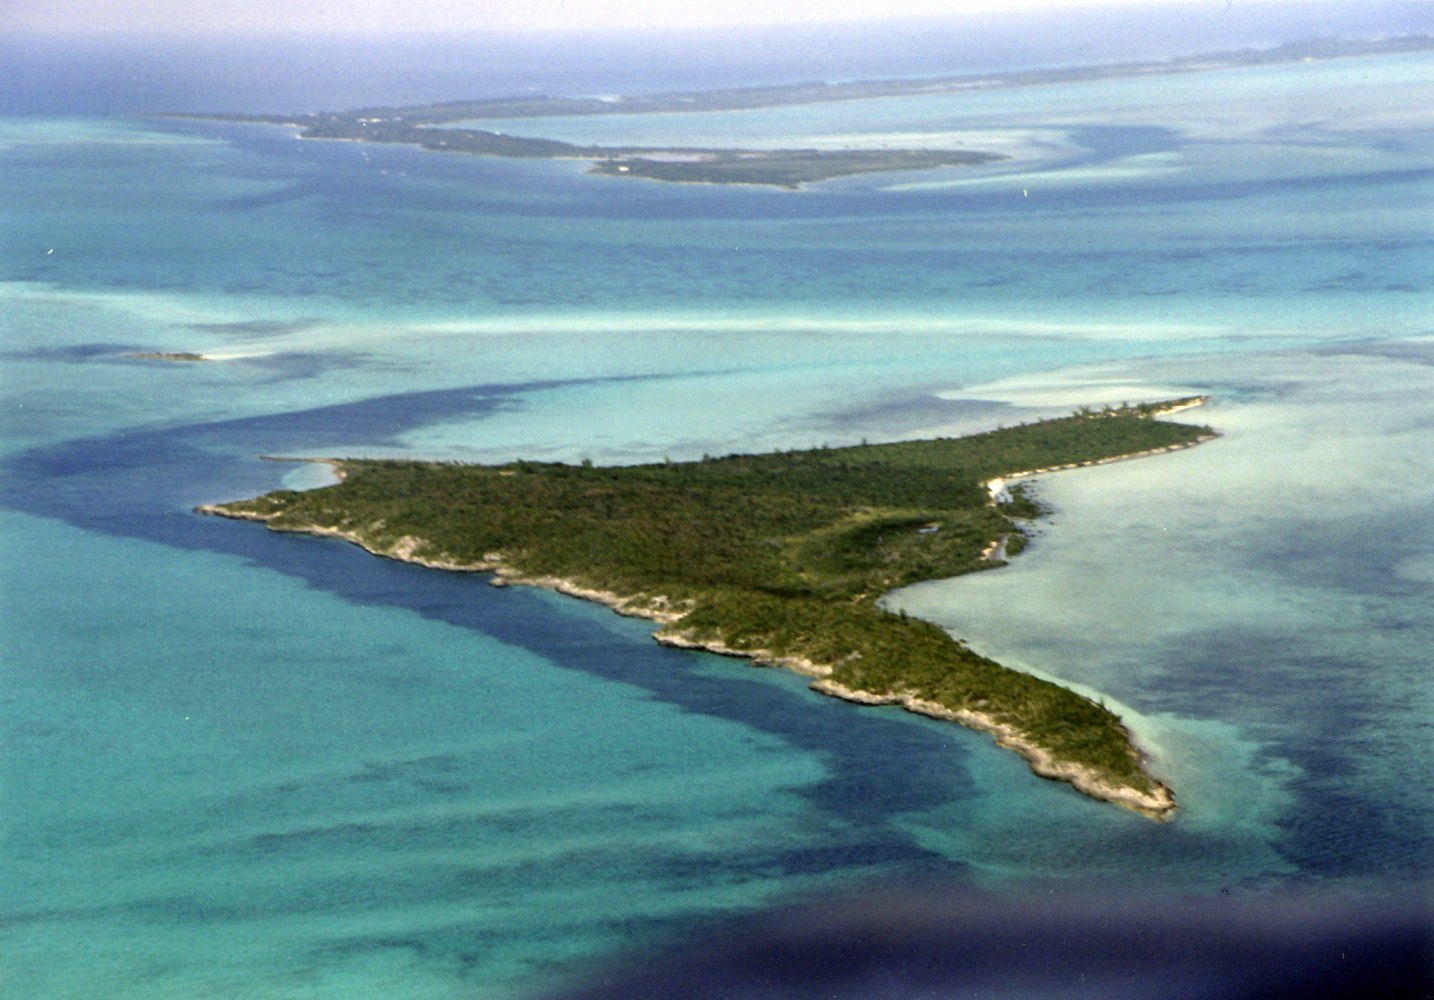 Private Islands For Sale Wild Berry Island Bahamas Caribbean